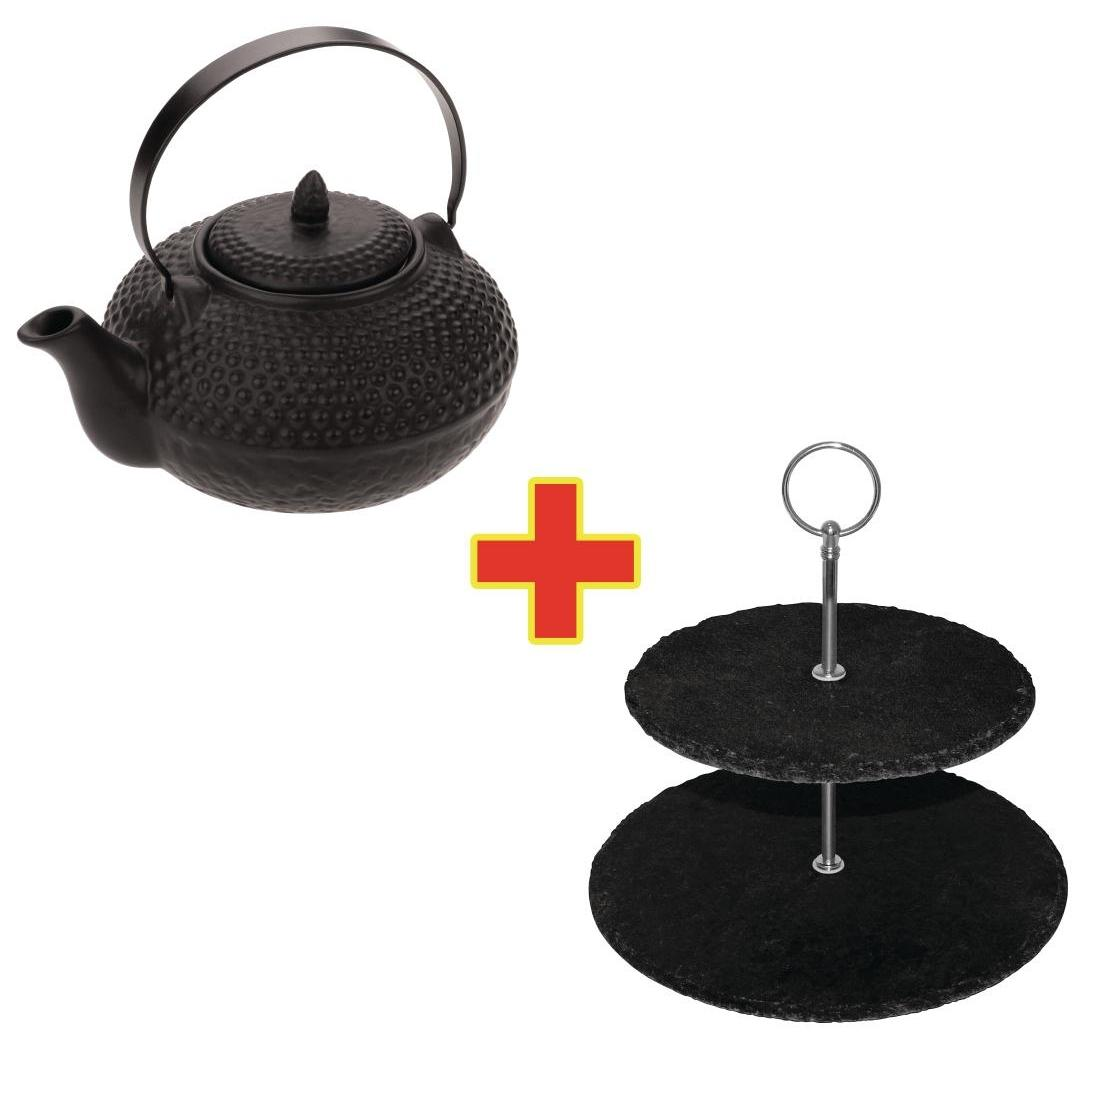 S799 - Special Offer Olympia Oriental Teapot and Afternoon Tea Stand - Each - S799